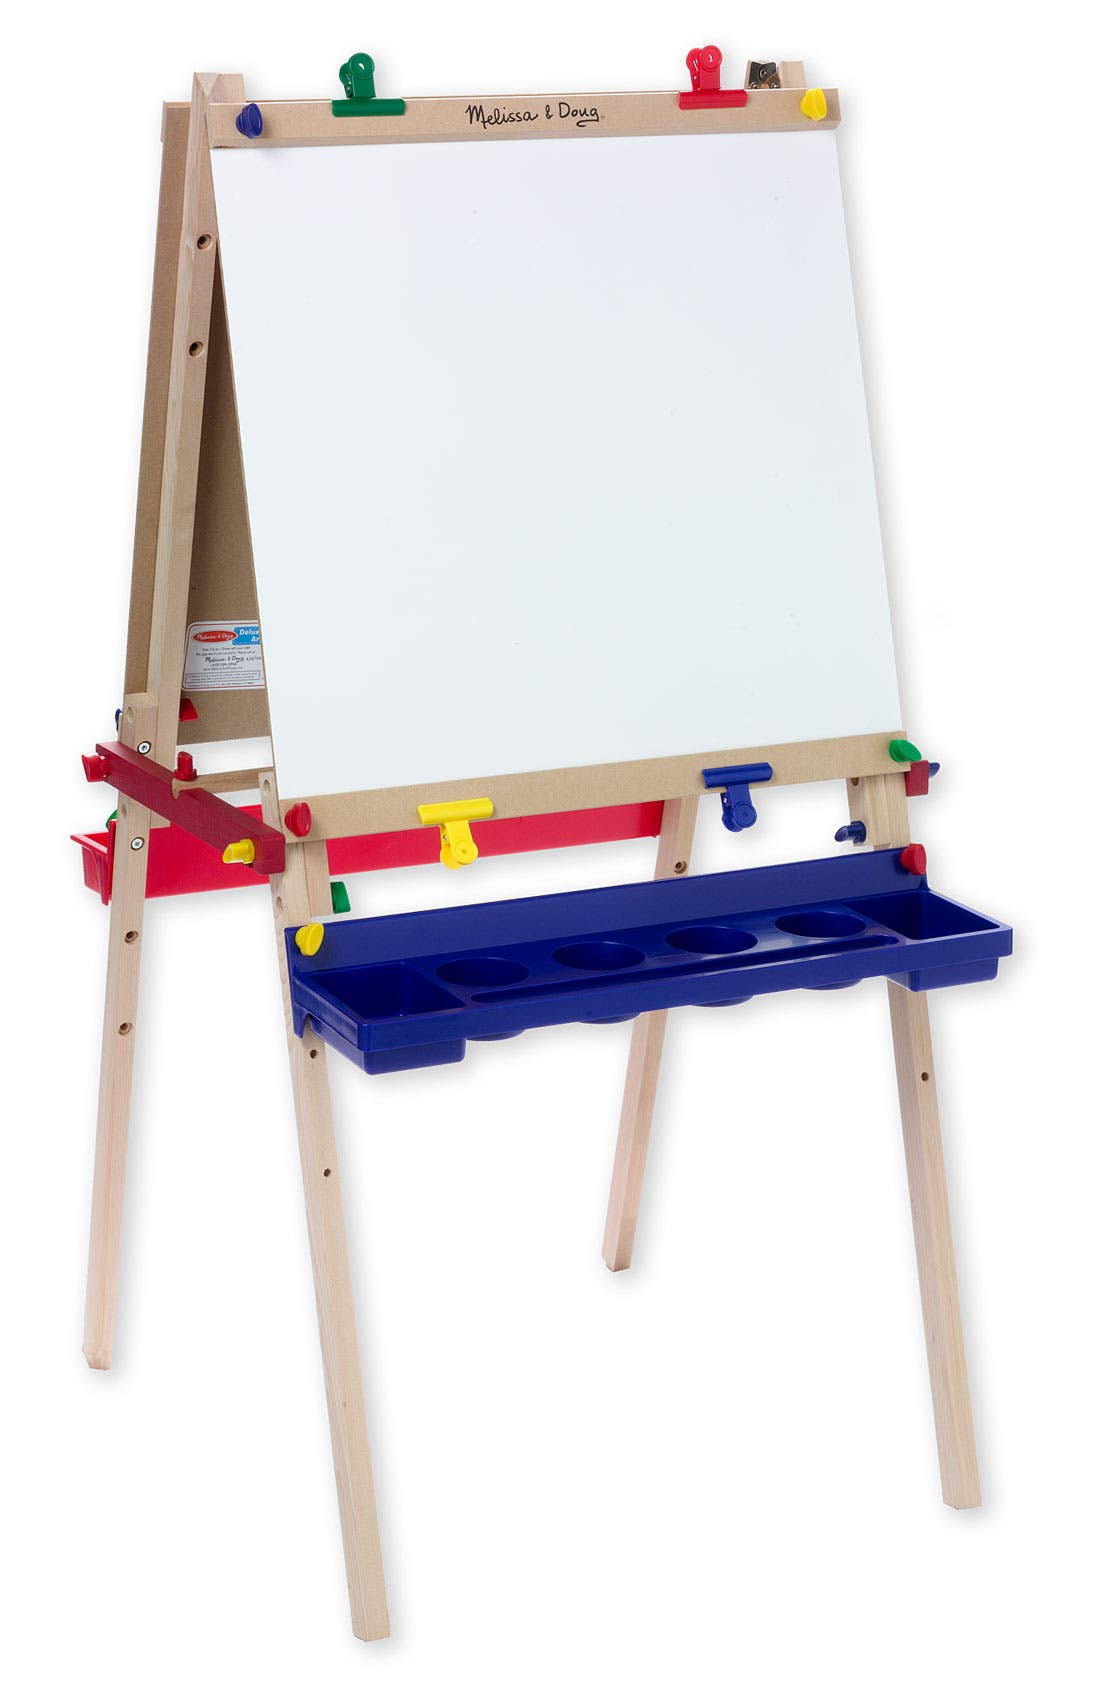 Alternate Image 1 Selected - Melissa & Doug Standing Wooden Art Easel